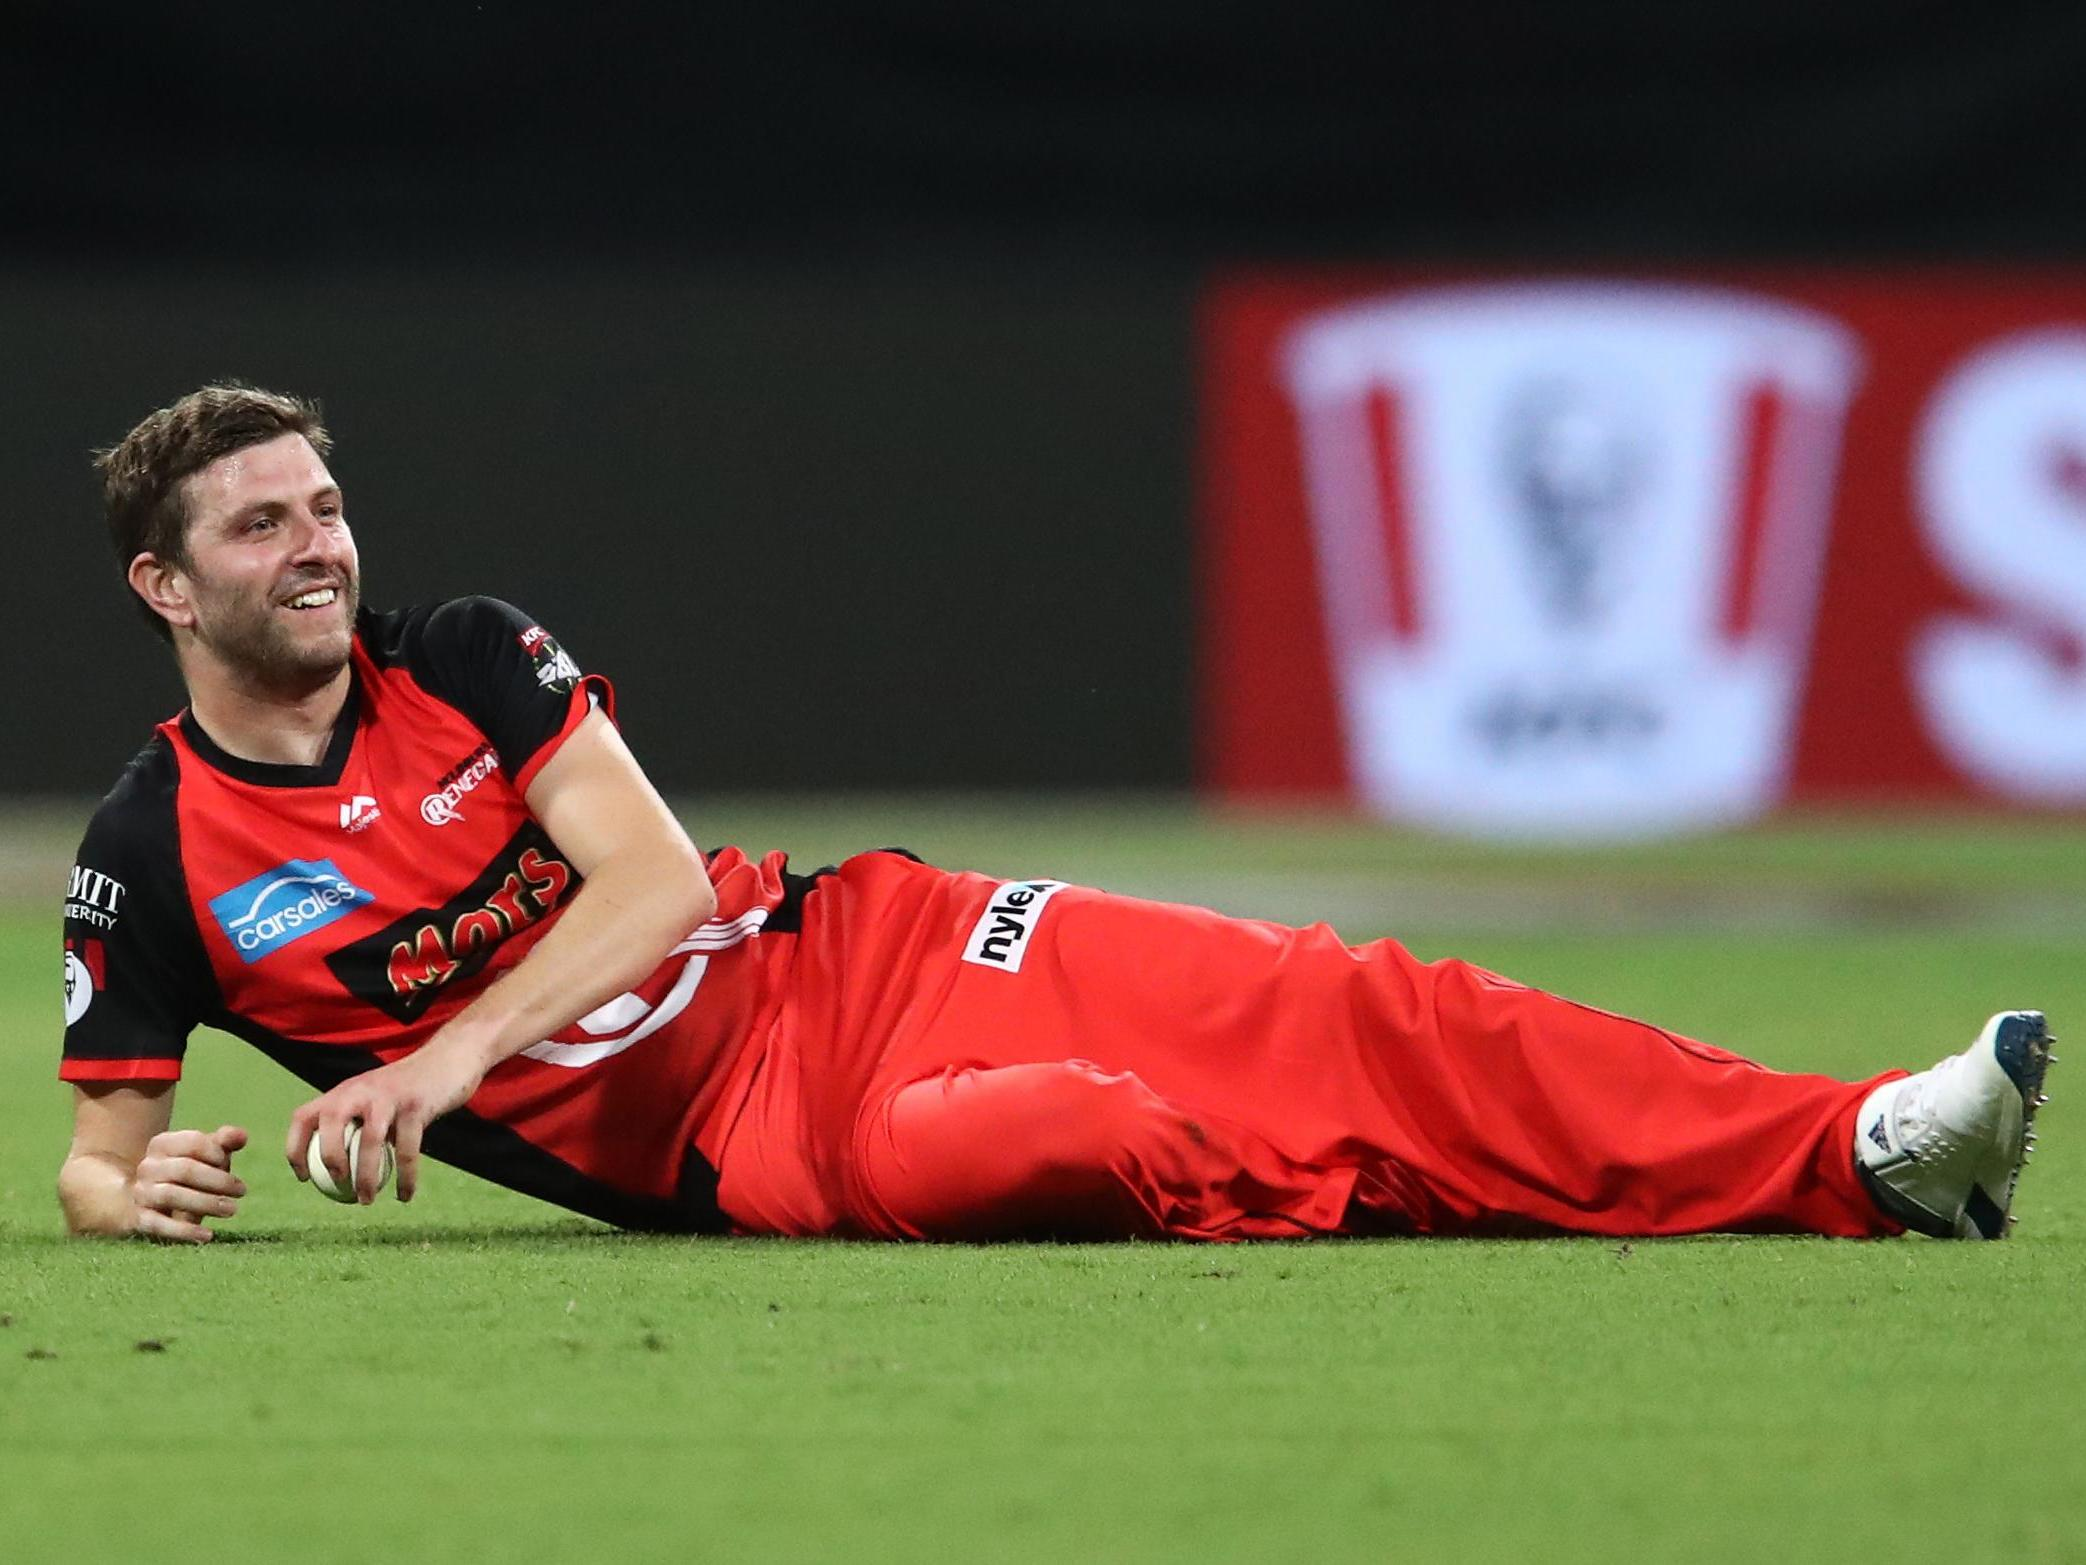 Harry Gurney ready for IPL challenge after winter of dizzying success